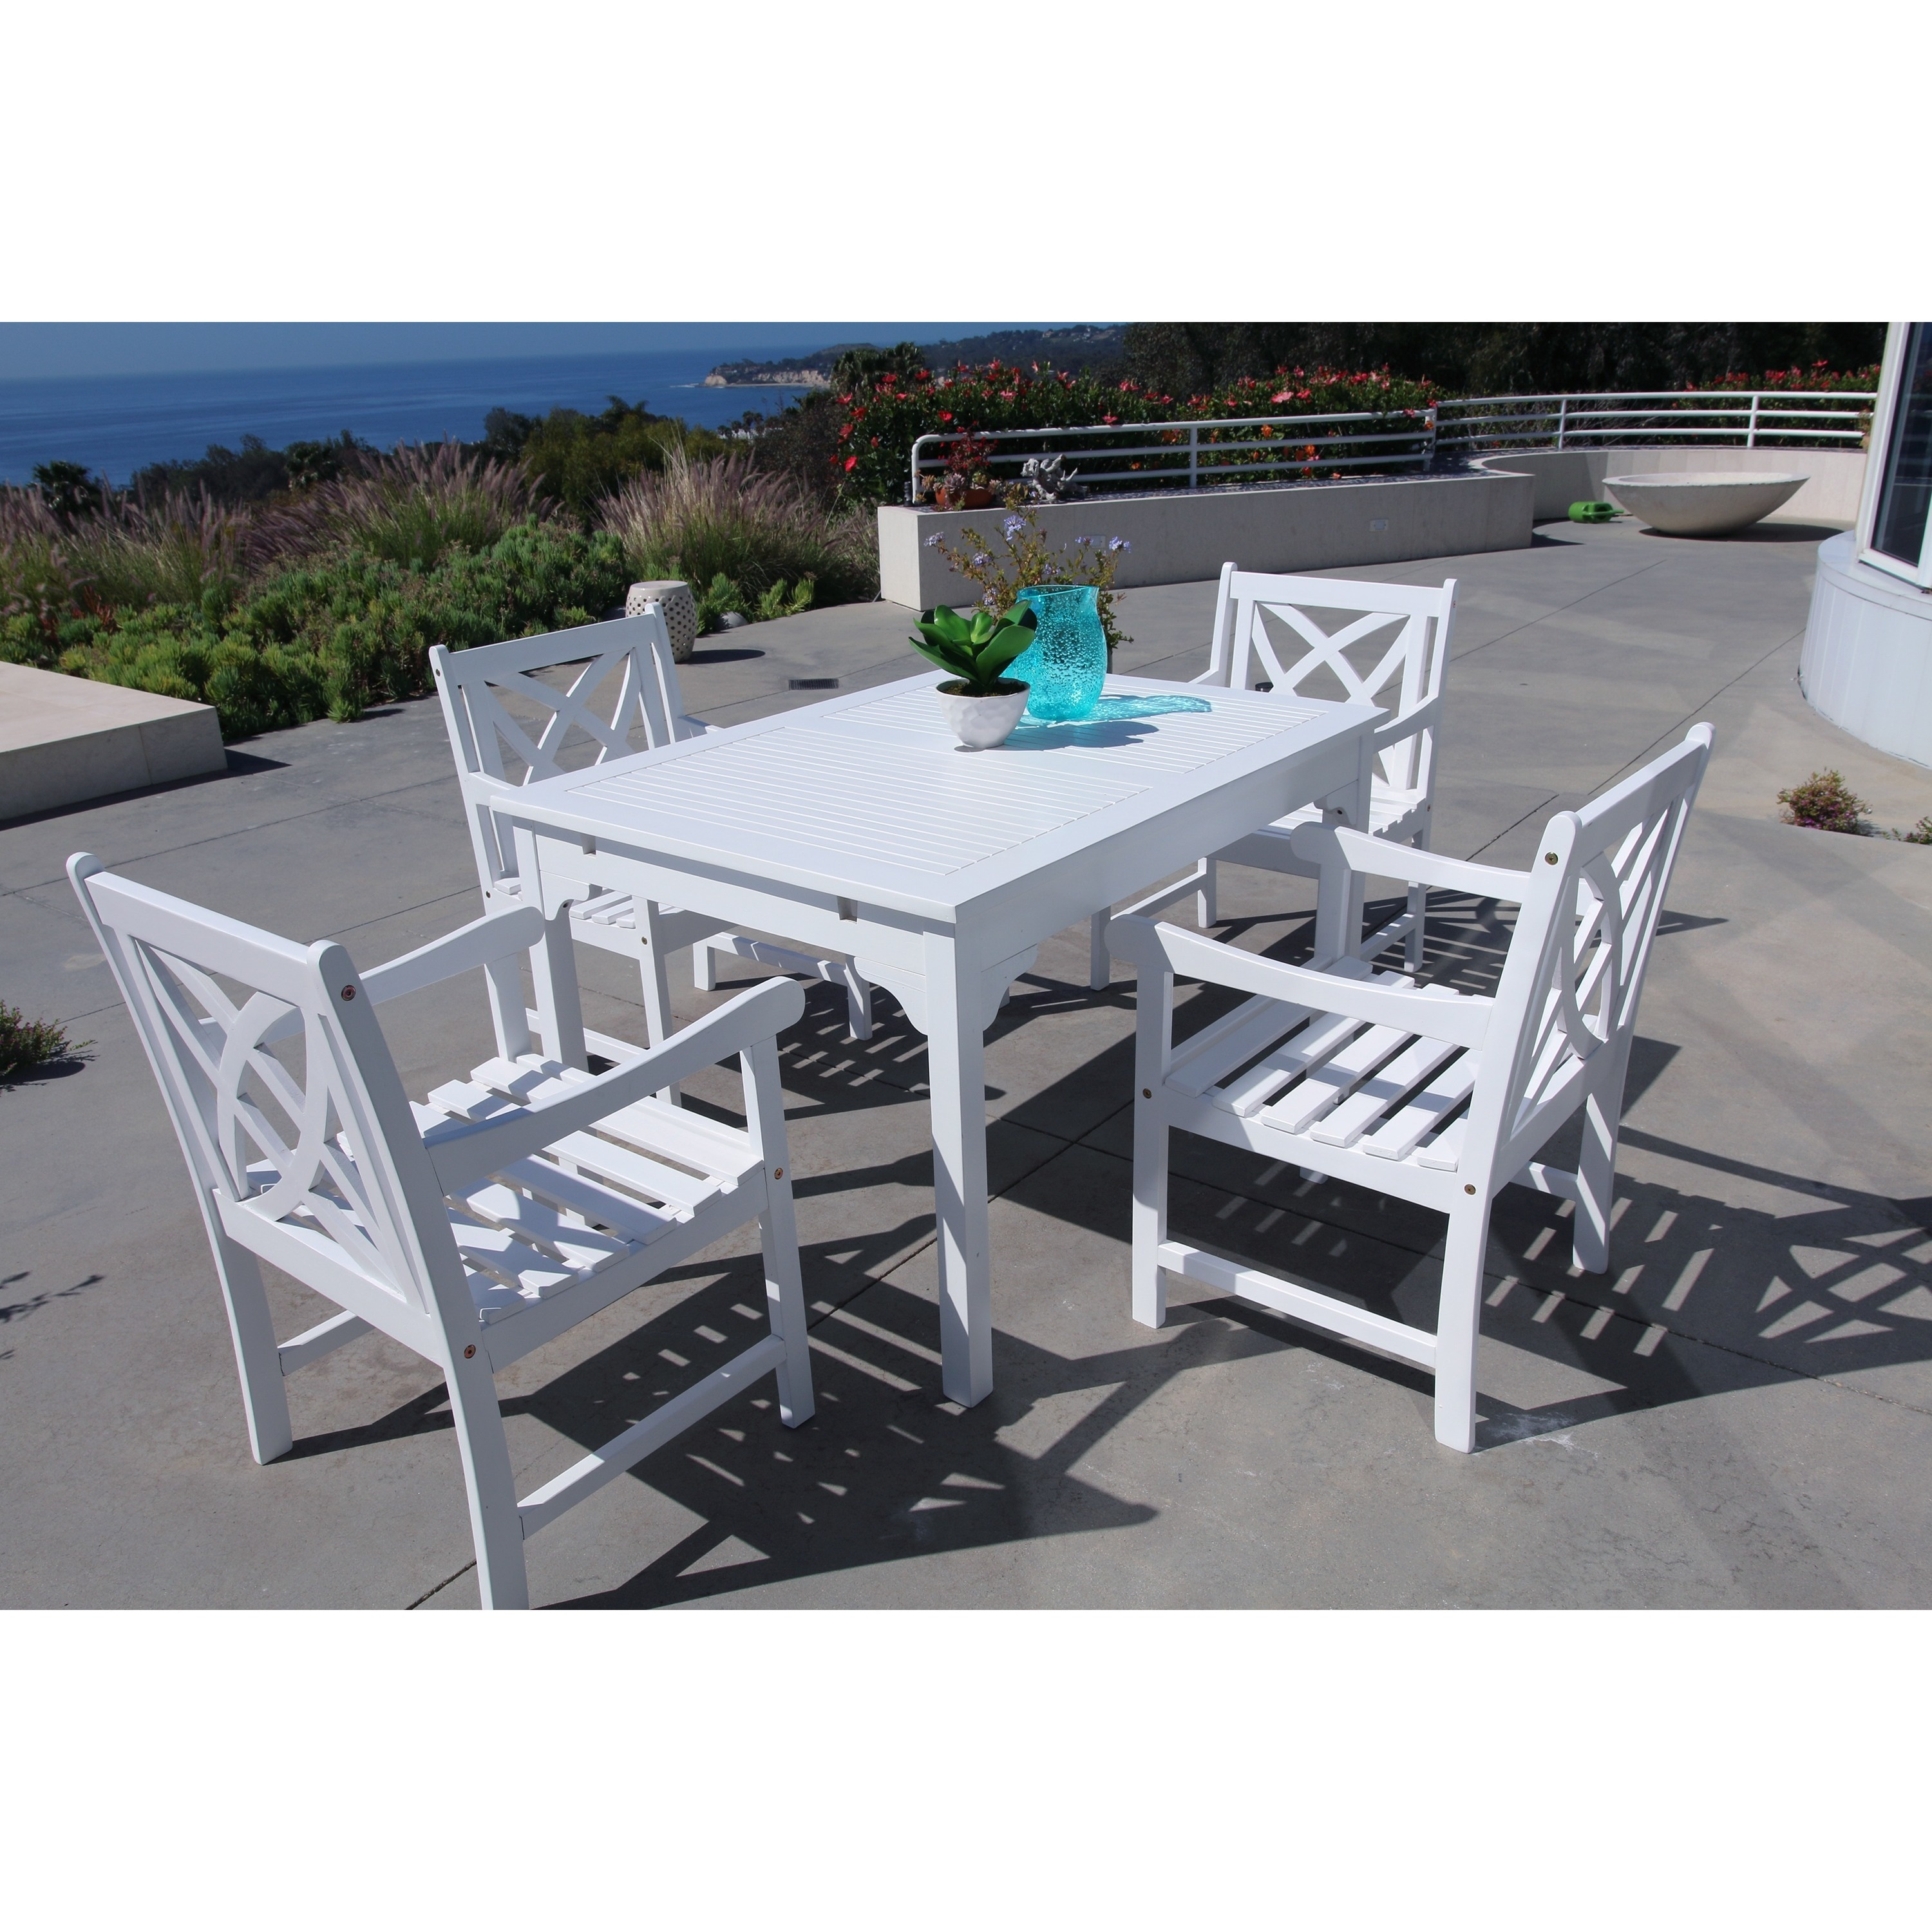 Bradley Eco Friendly 5 Piece Outdoor White Hardwood Dining Set With Rectangle Table And Arm Chairs Overstock 11502936